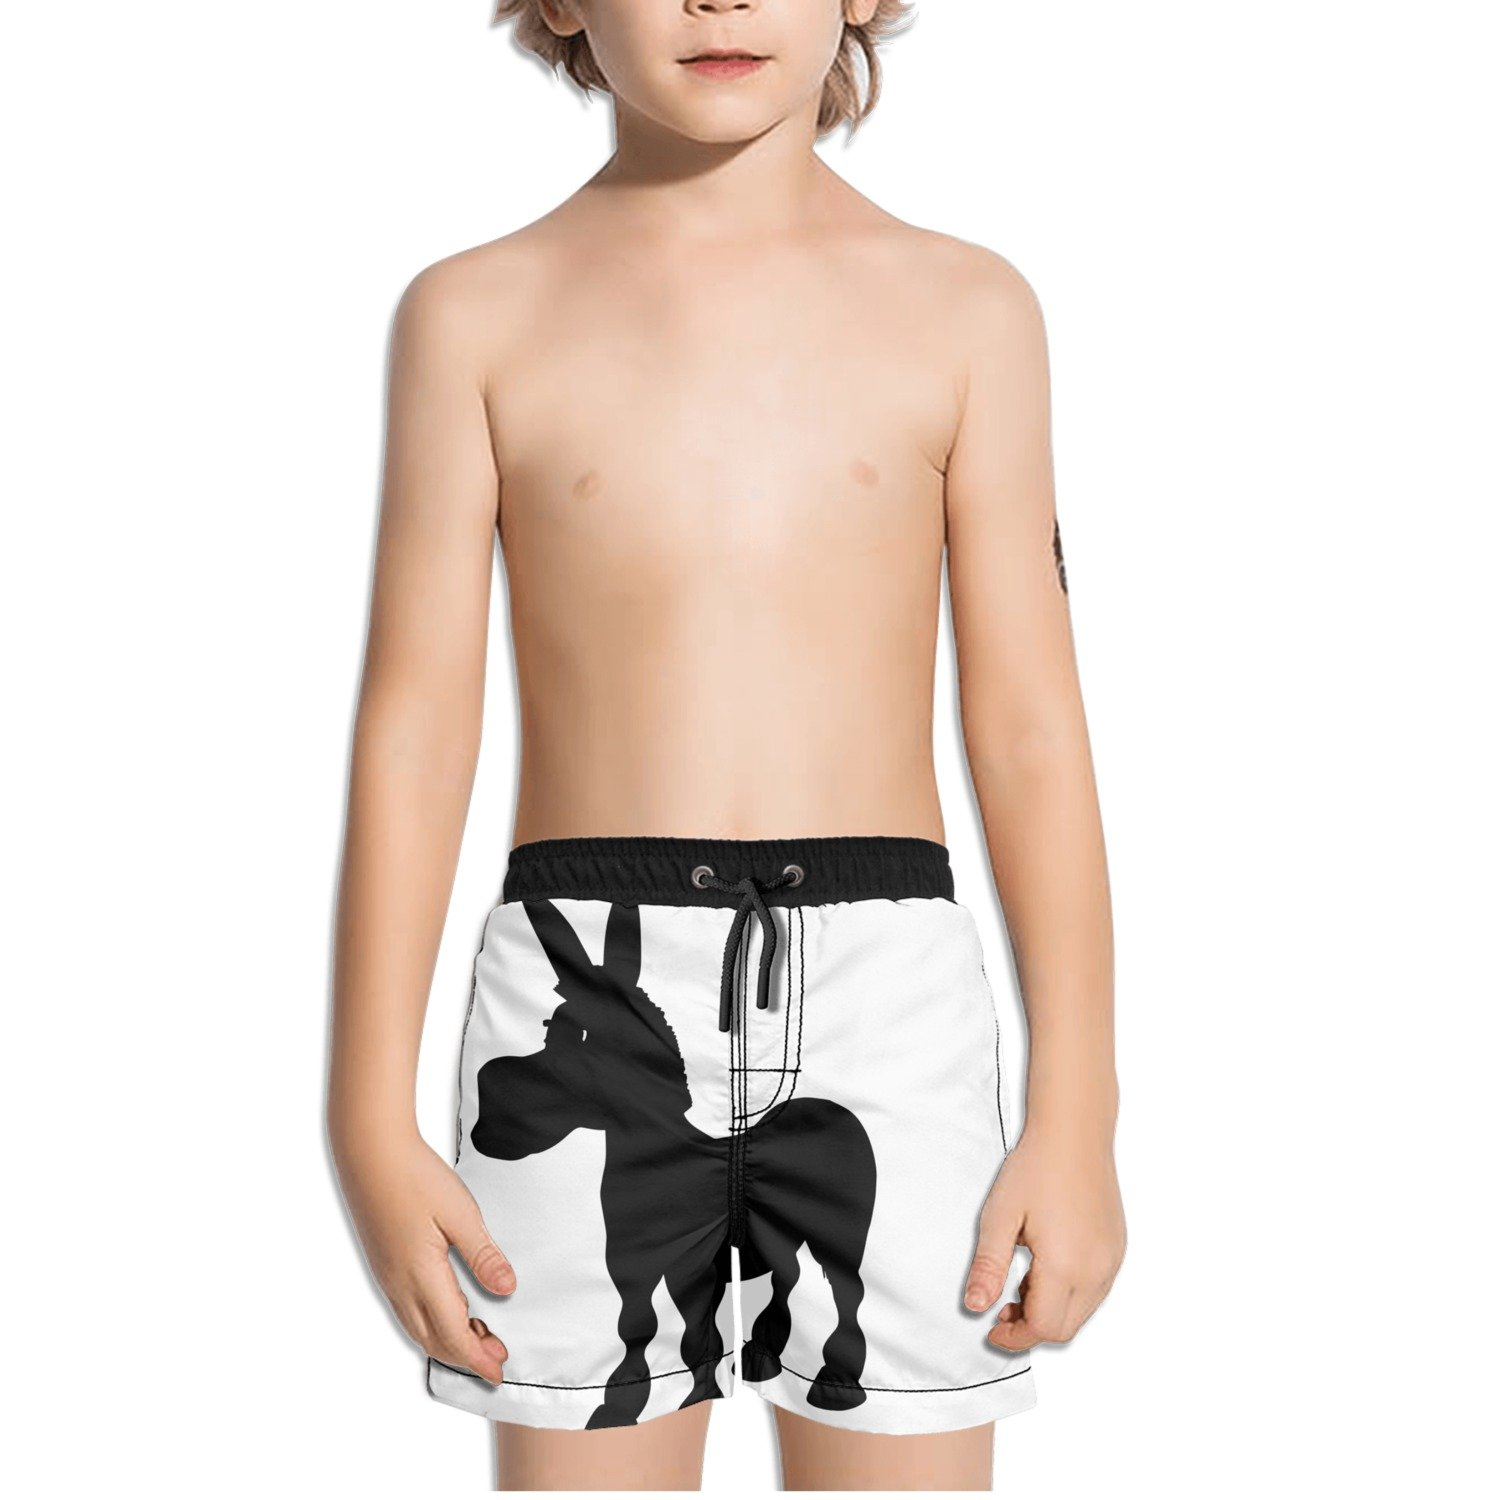 Ouxioaz Boys Swim Trunk Donkey Silhouette Beach Board Shorts